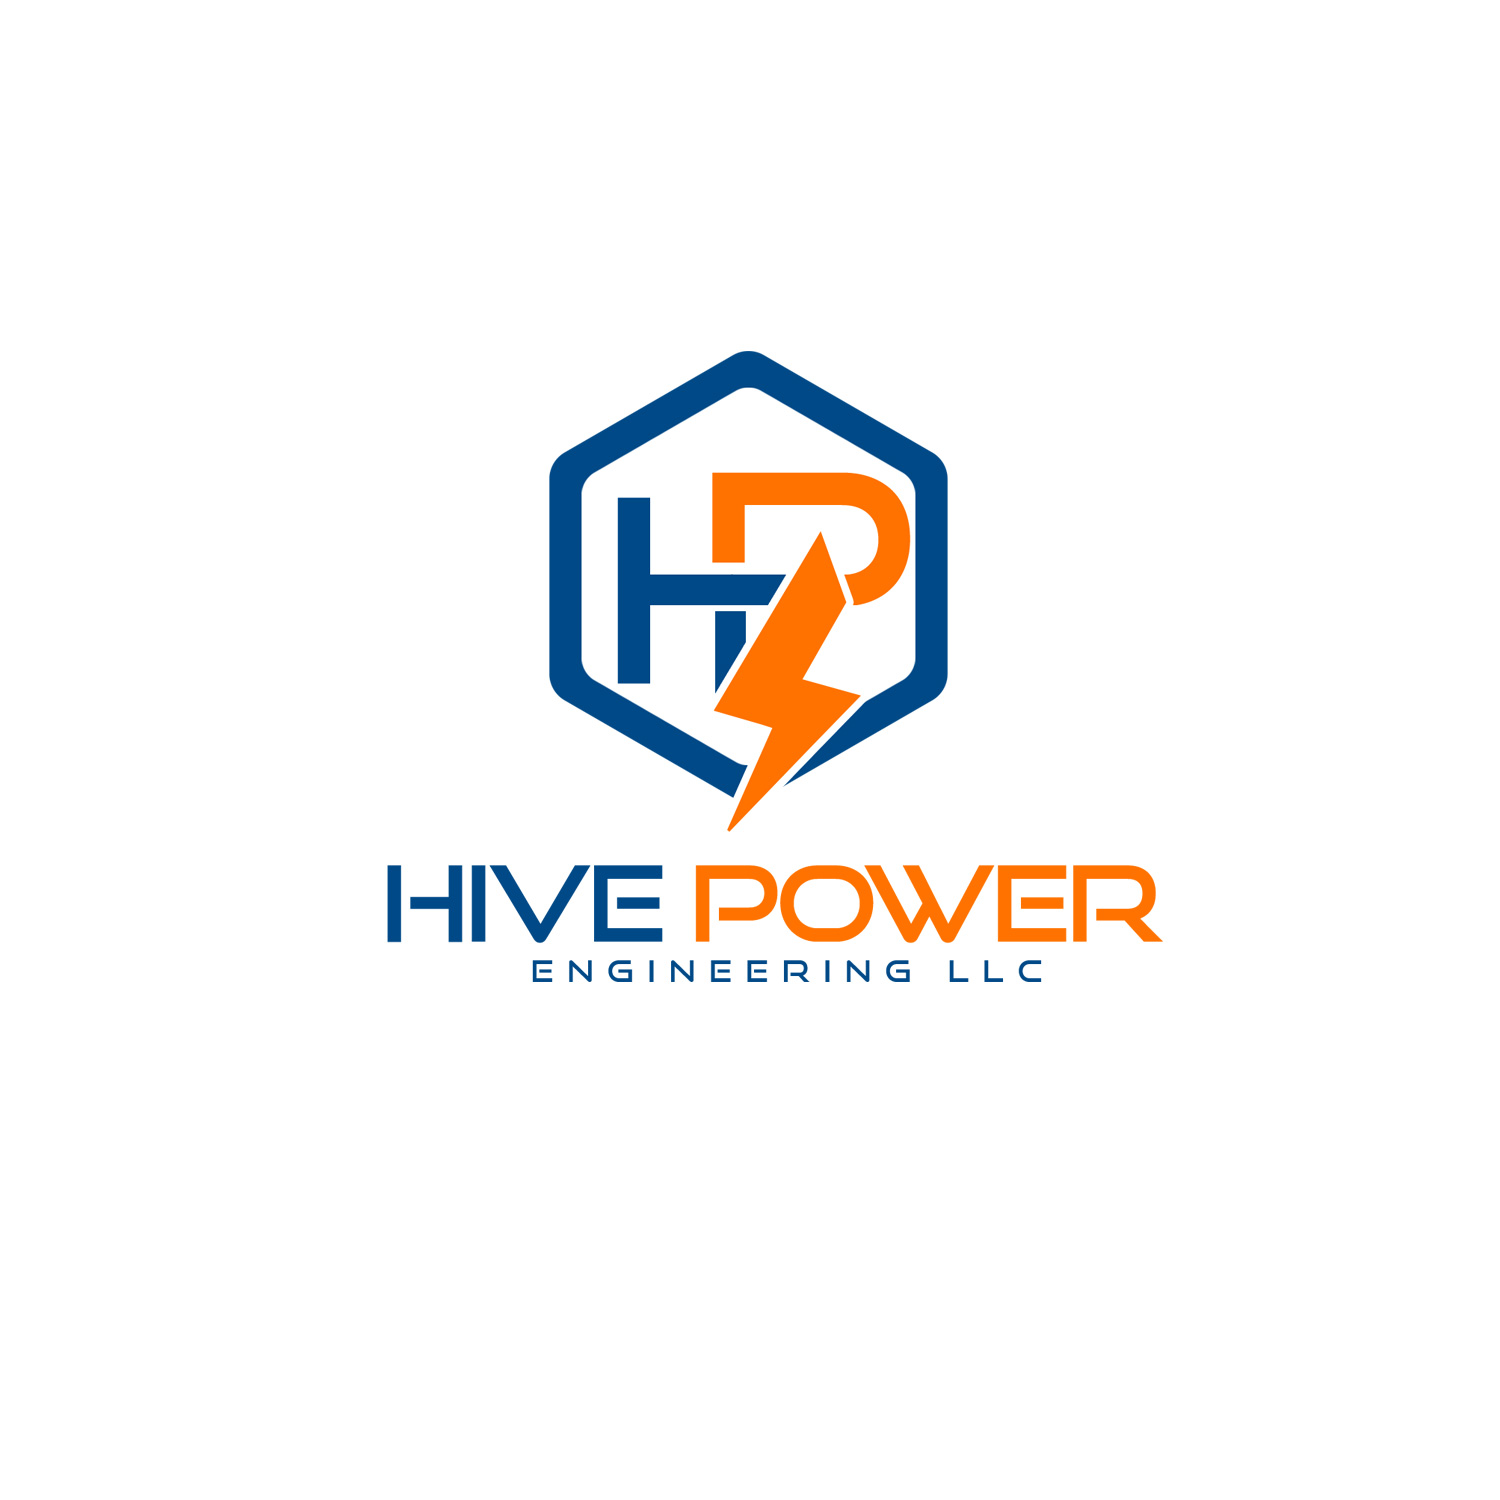 Elegant, Modern, Electric Company Logo Design for Open to ...